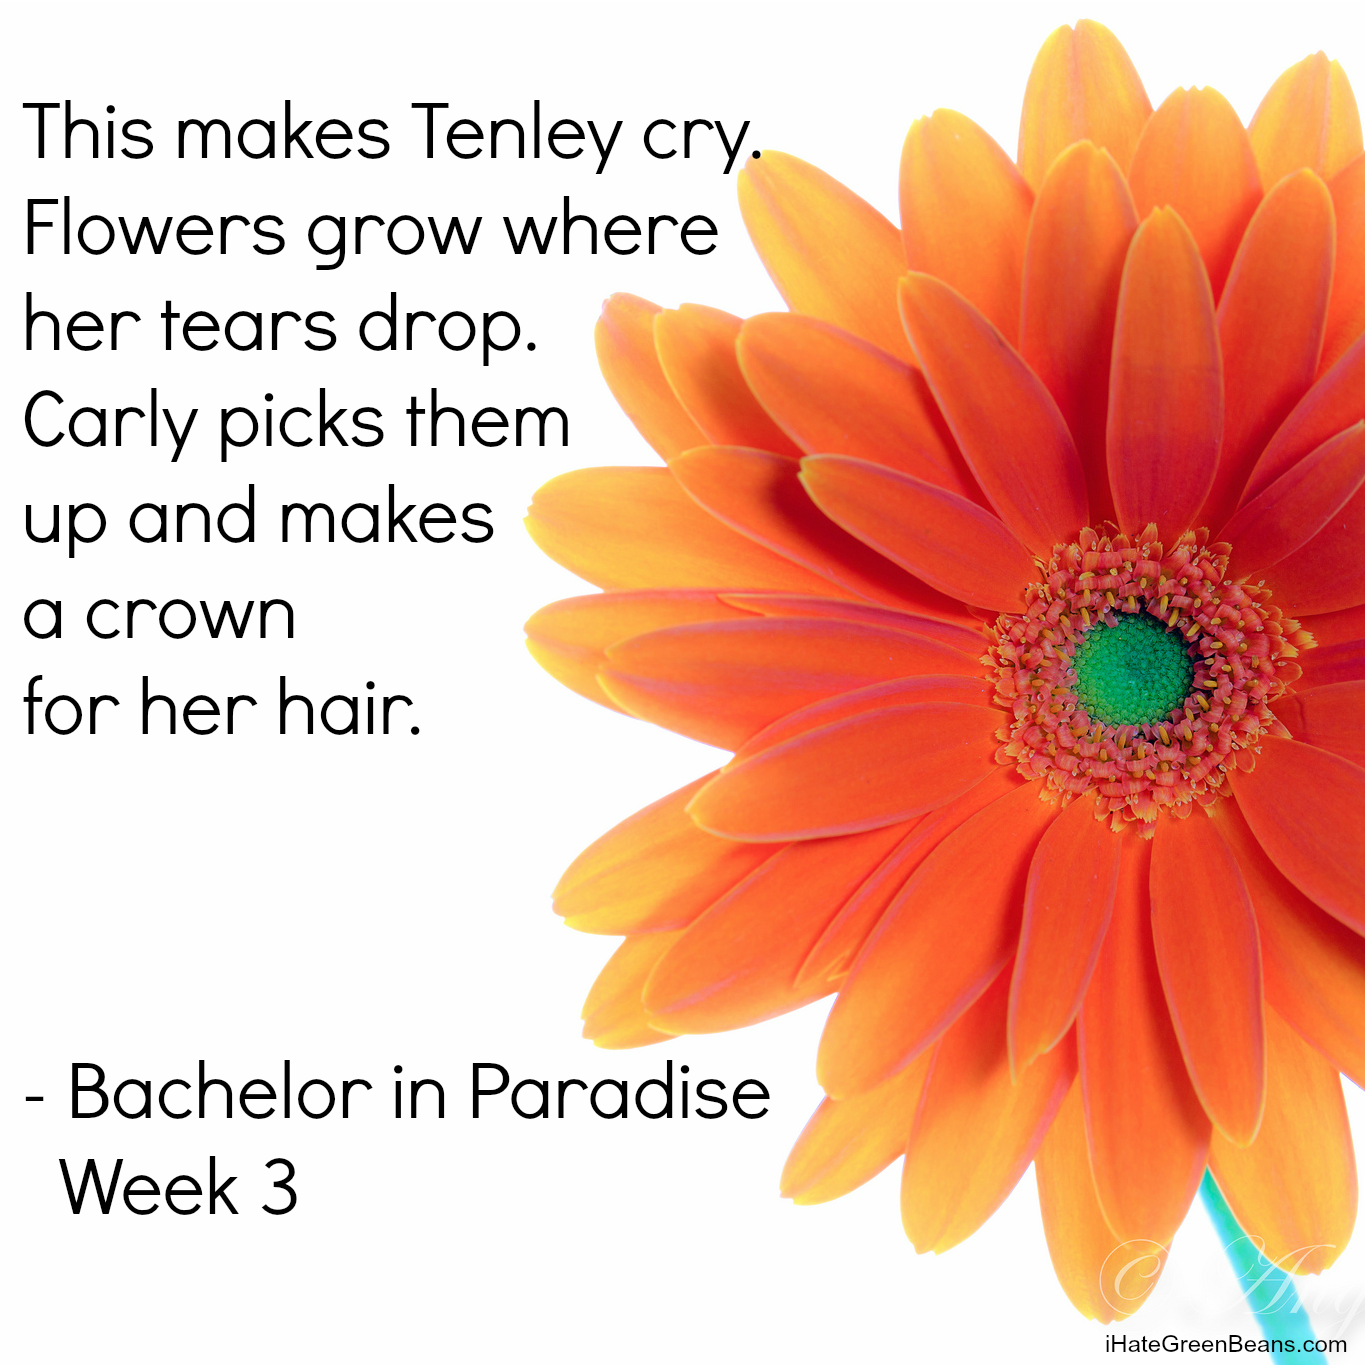 Bachelor in Paradise Week 3